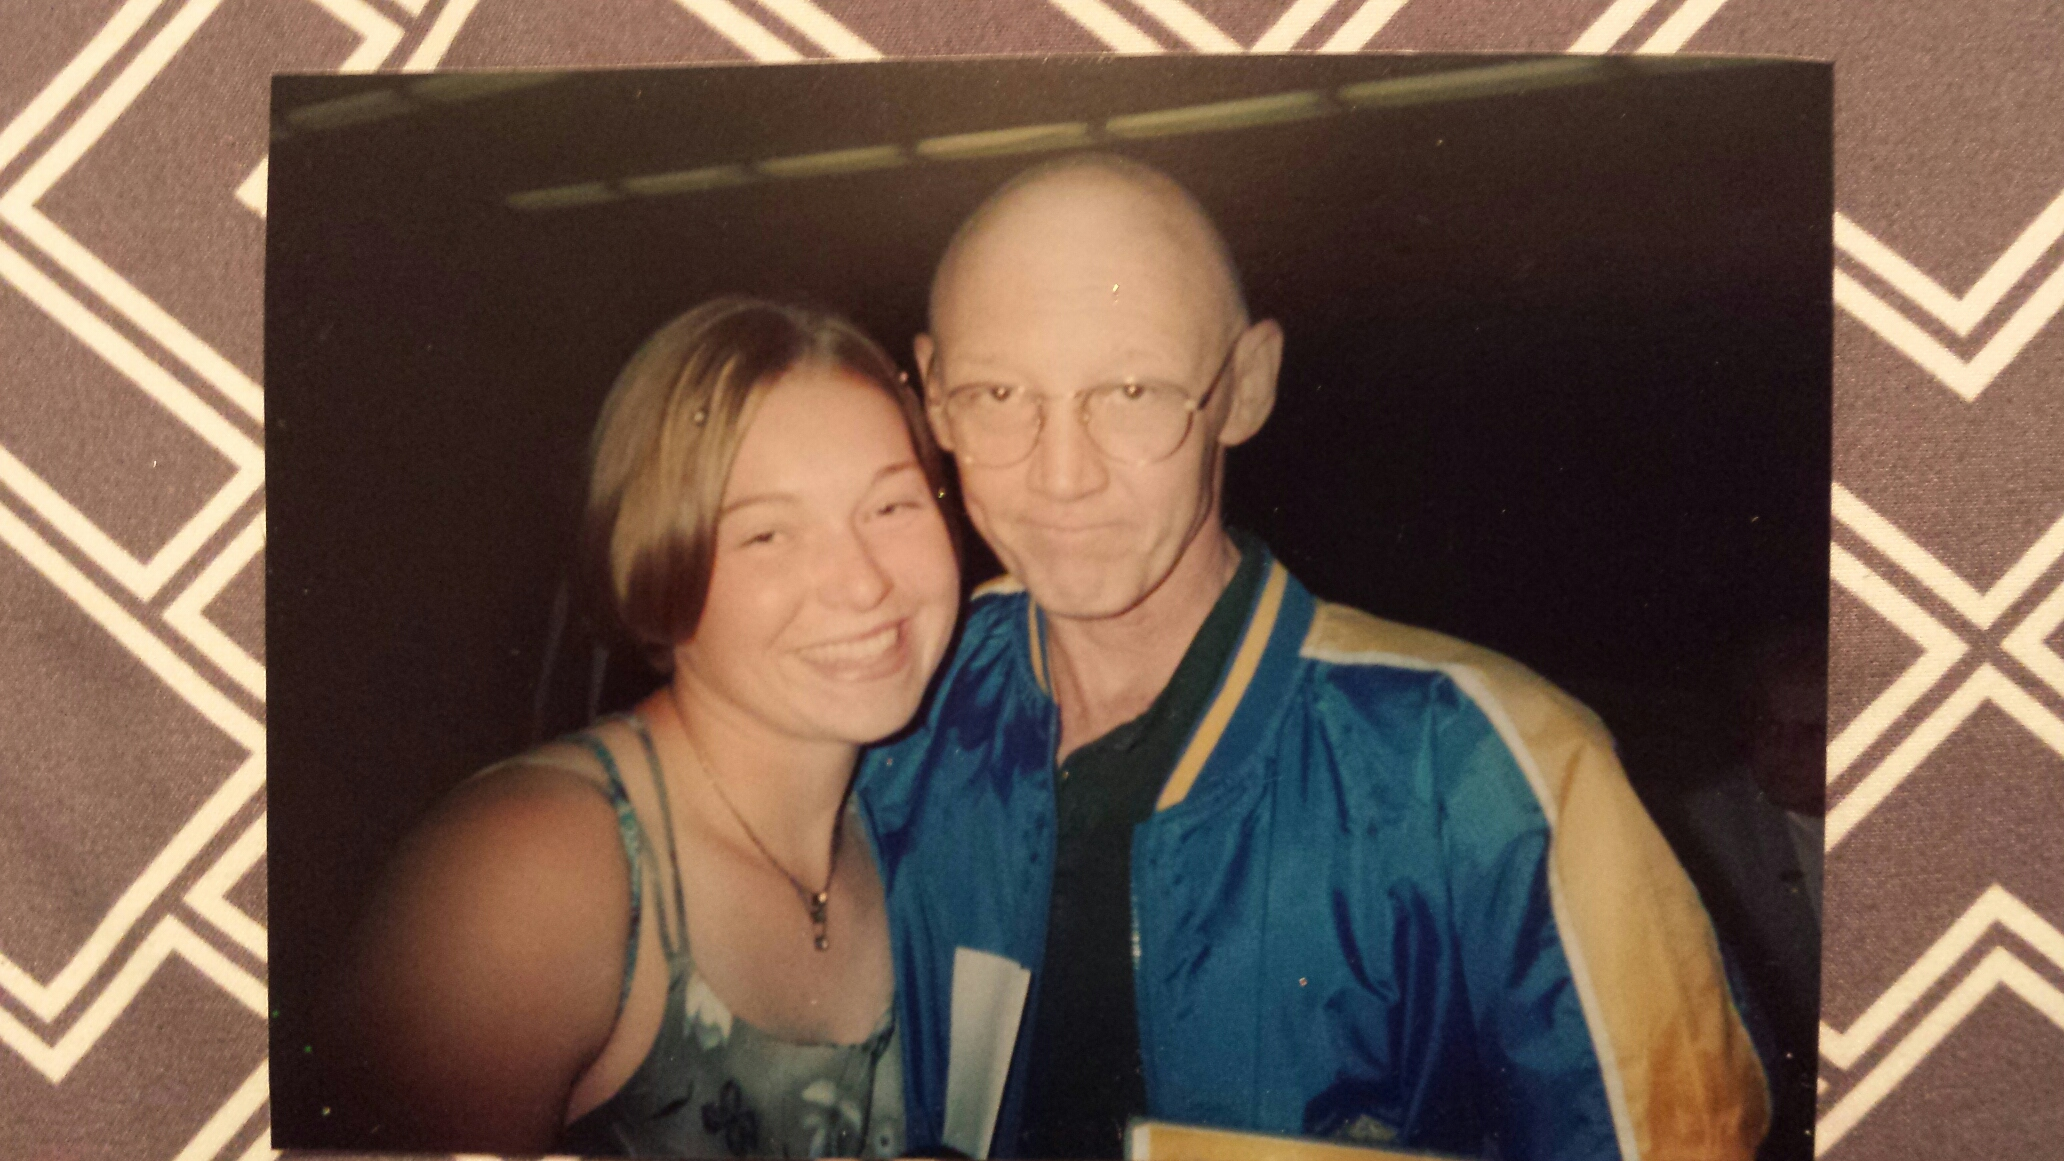 The winner of our Phoenix Helix anniversary giveaway shares her experience with cancer, and how it has inspired her to eat healthy. The wake up call was enough to make her change all of her eating habits into a paleo-like lifestyle. Here is Cassie posing with her dad several years ago.